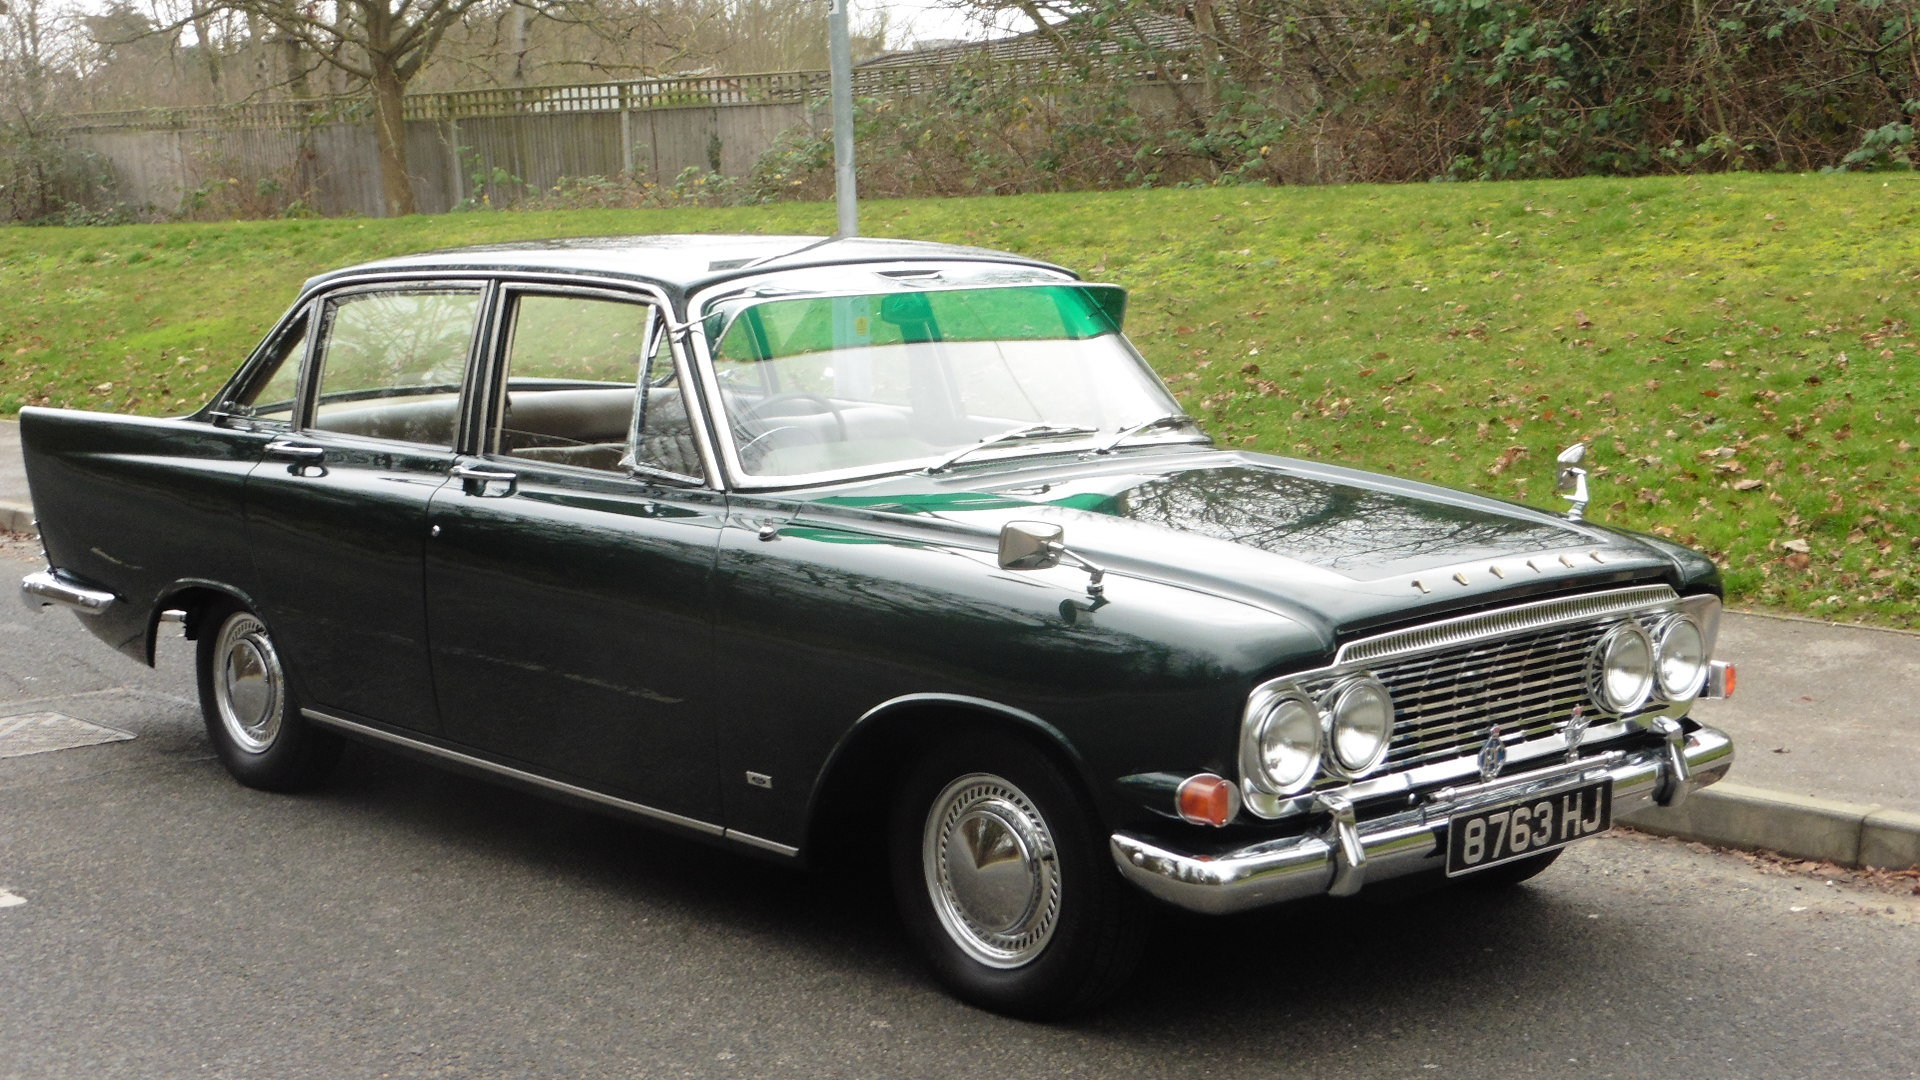 1963 Ford Zodiac MK3  Goodwood Green Just 49000 Miles Exceptional SOLD (picture 1 of 6)